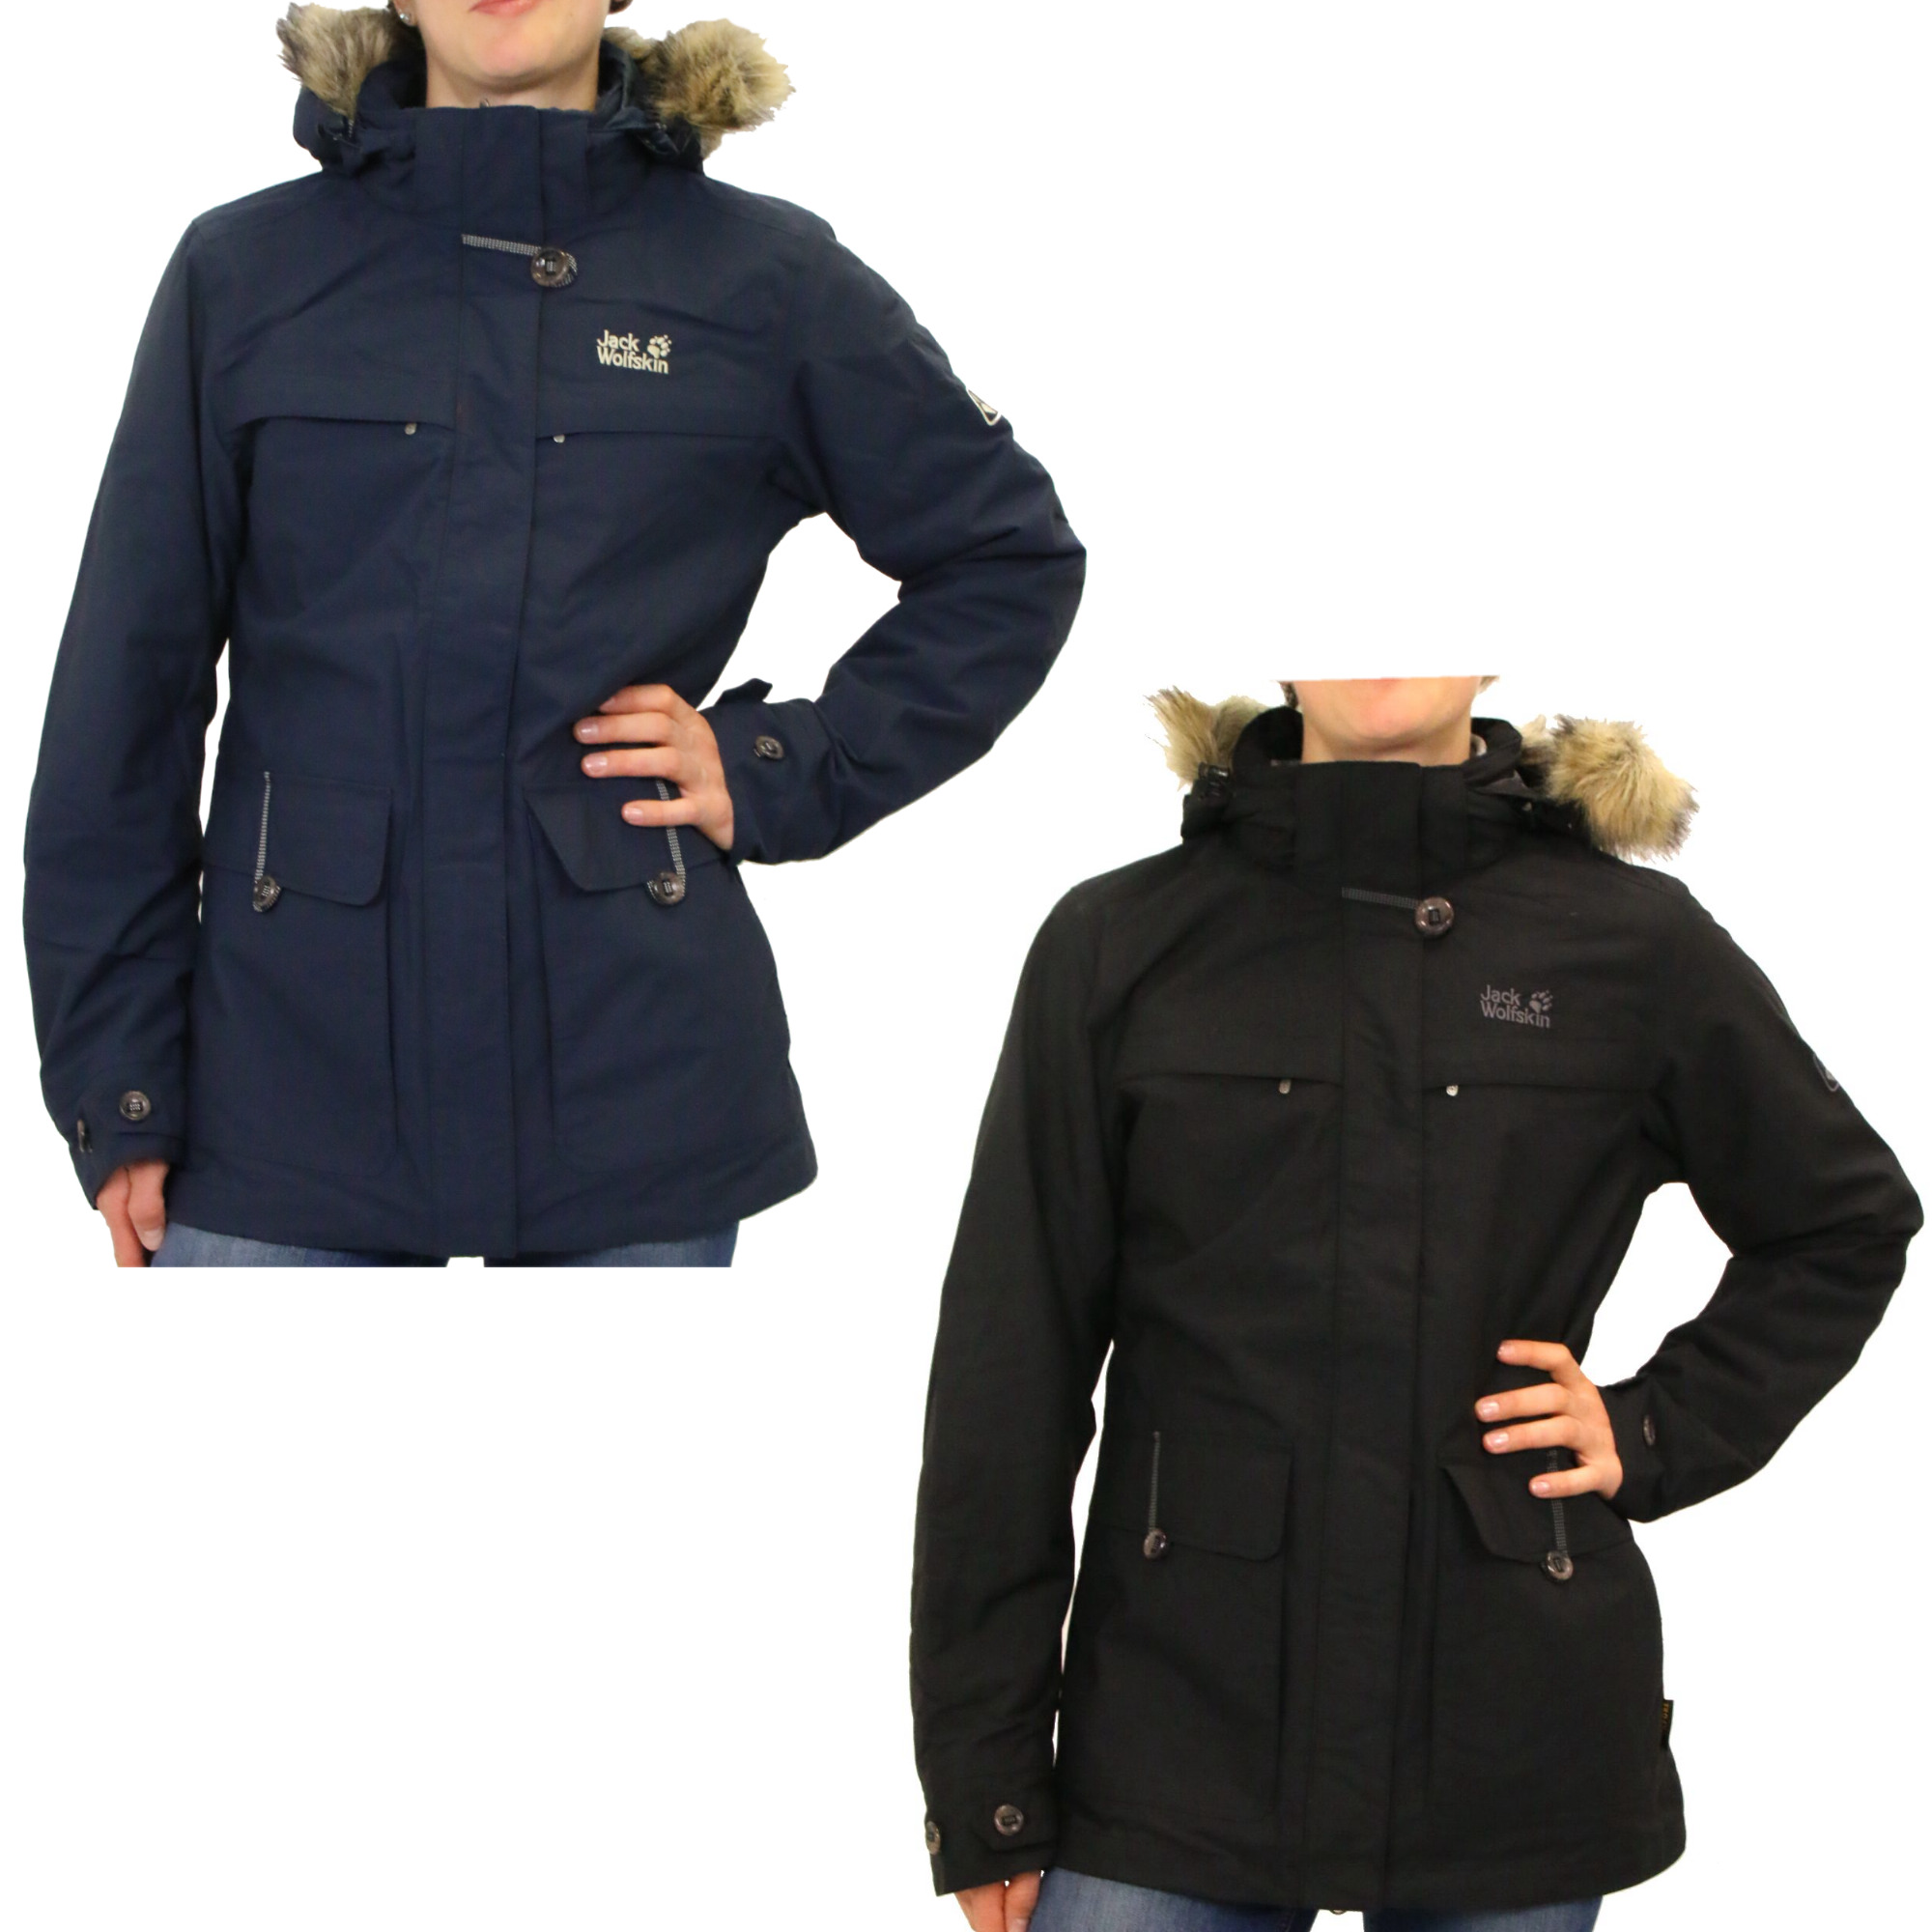 jack wolfskin corner brook 3 in 1 jacke parka doppeljacke. Black Bedroom Furniture Sets. Home Design Ideas